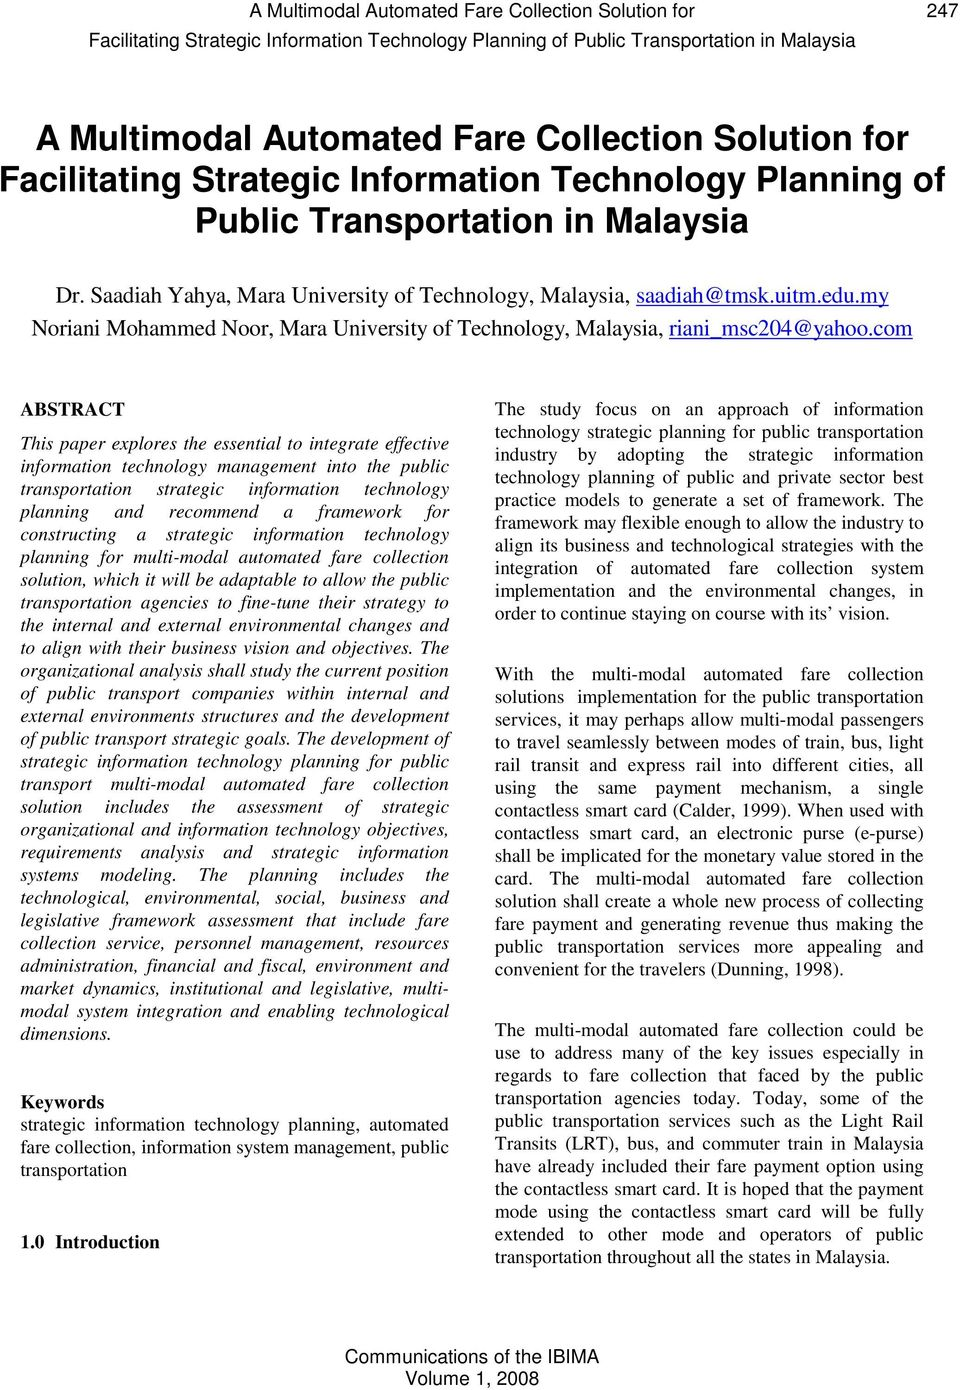 A Multimodal Automated Fare Collection Solution For Facilitating Strategic Information Technology Planning Of Public Transportation In Malaysia Pdf Free Download